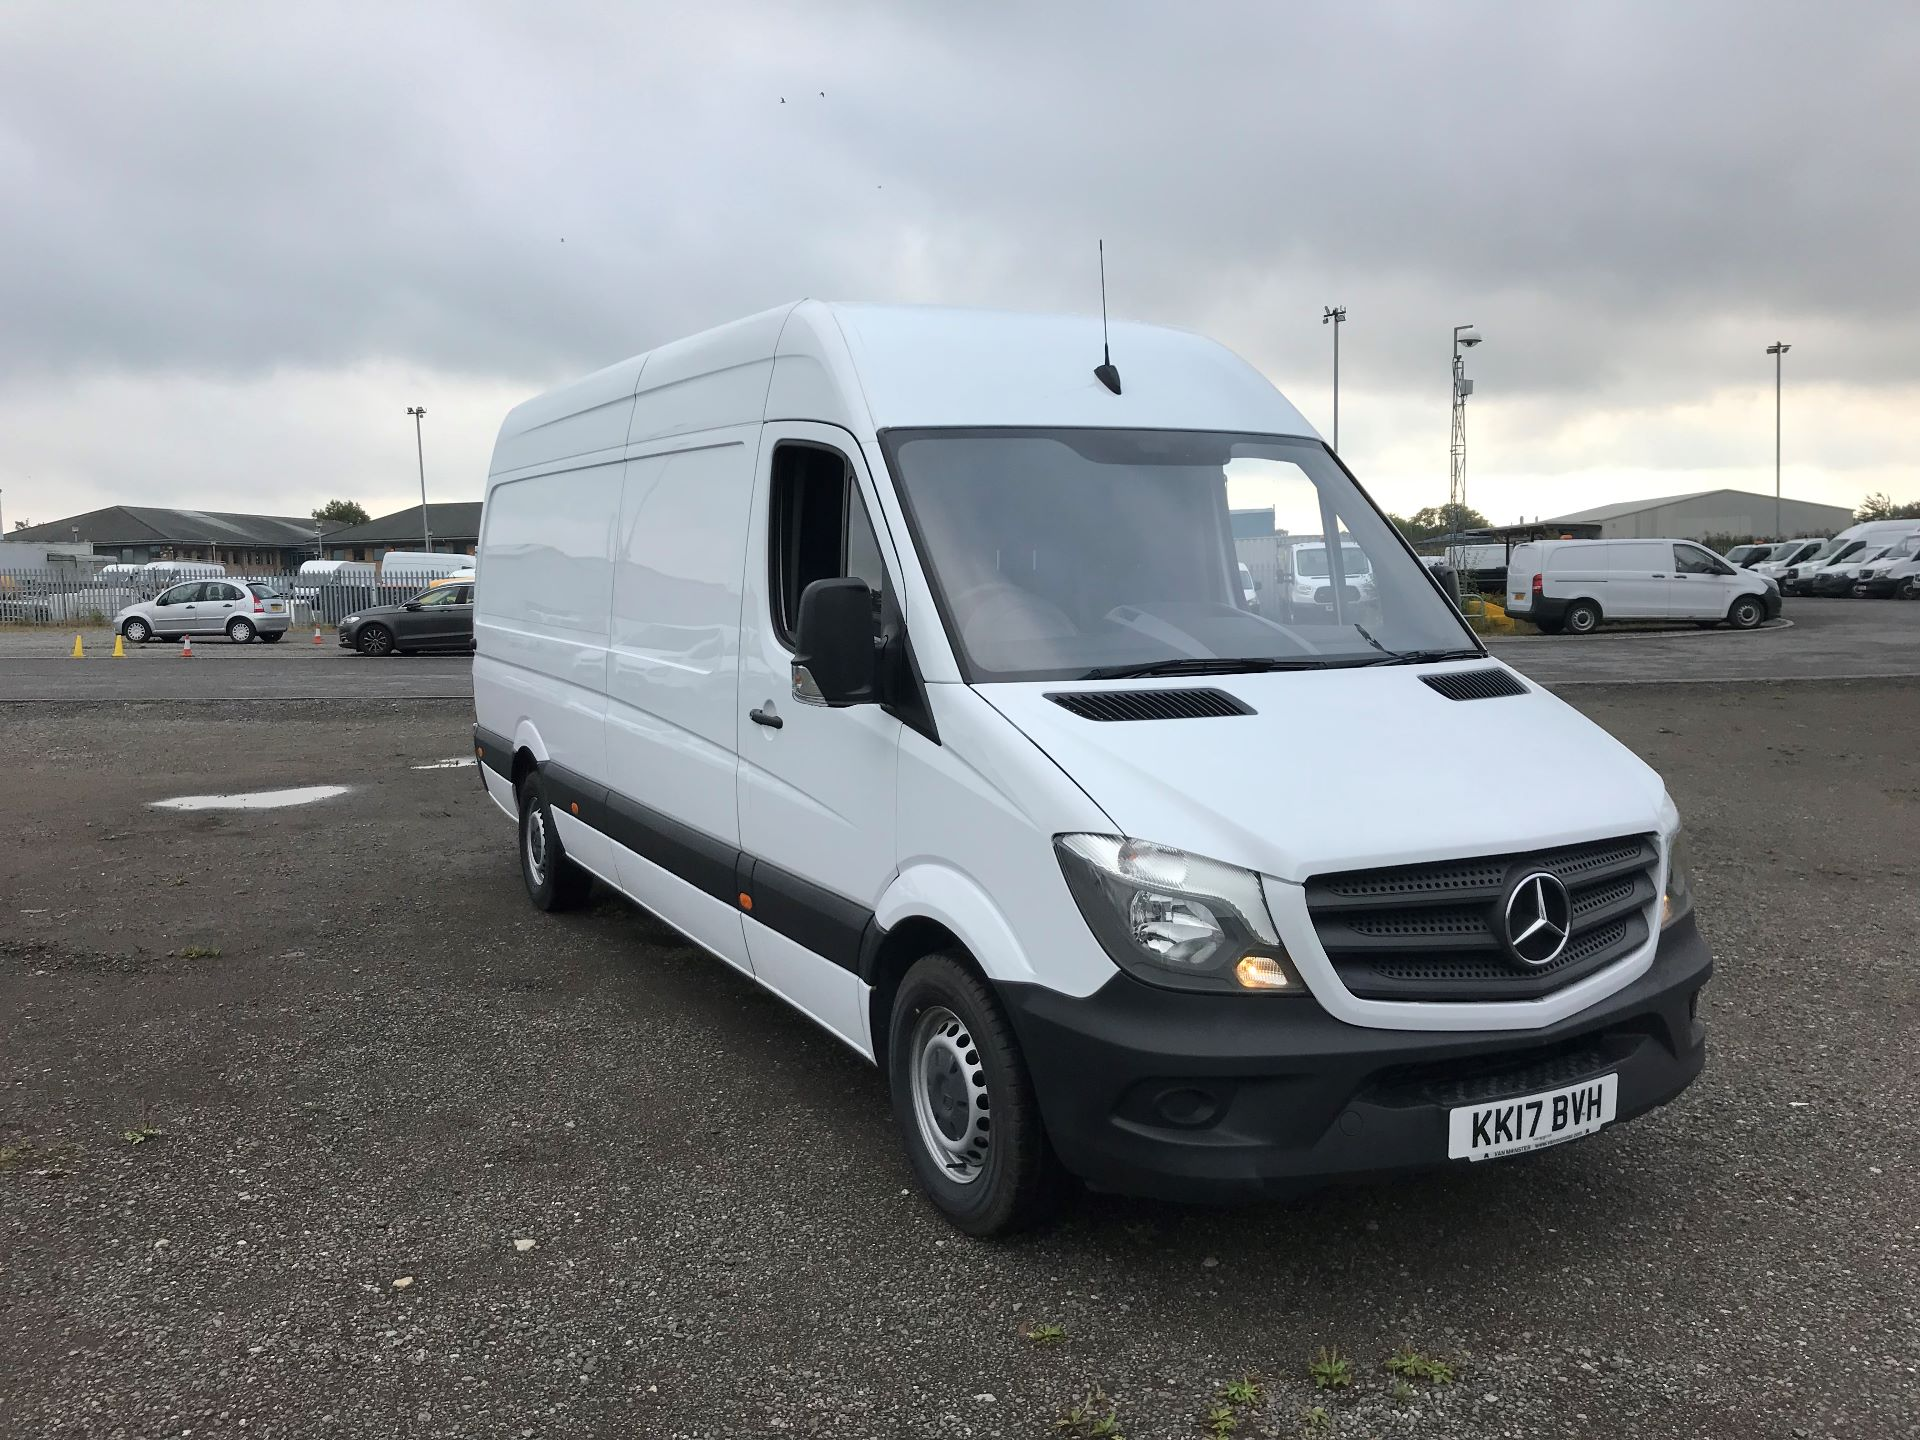 2017 Mercedes-Benz Sprinter 3.5T High Roof Van (KK17BVH)